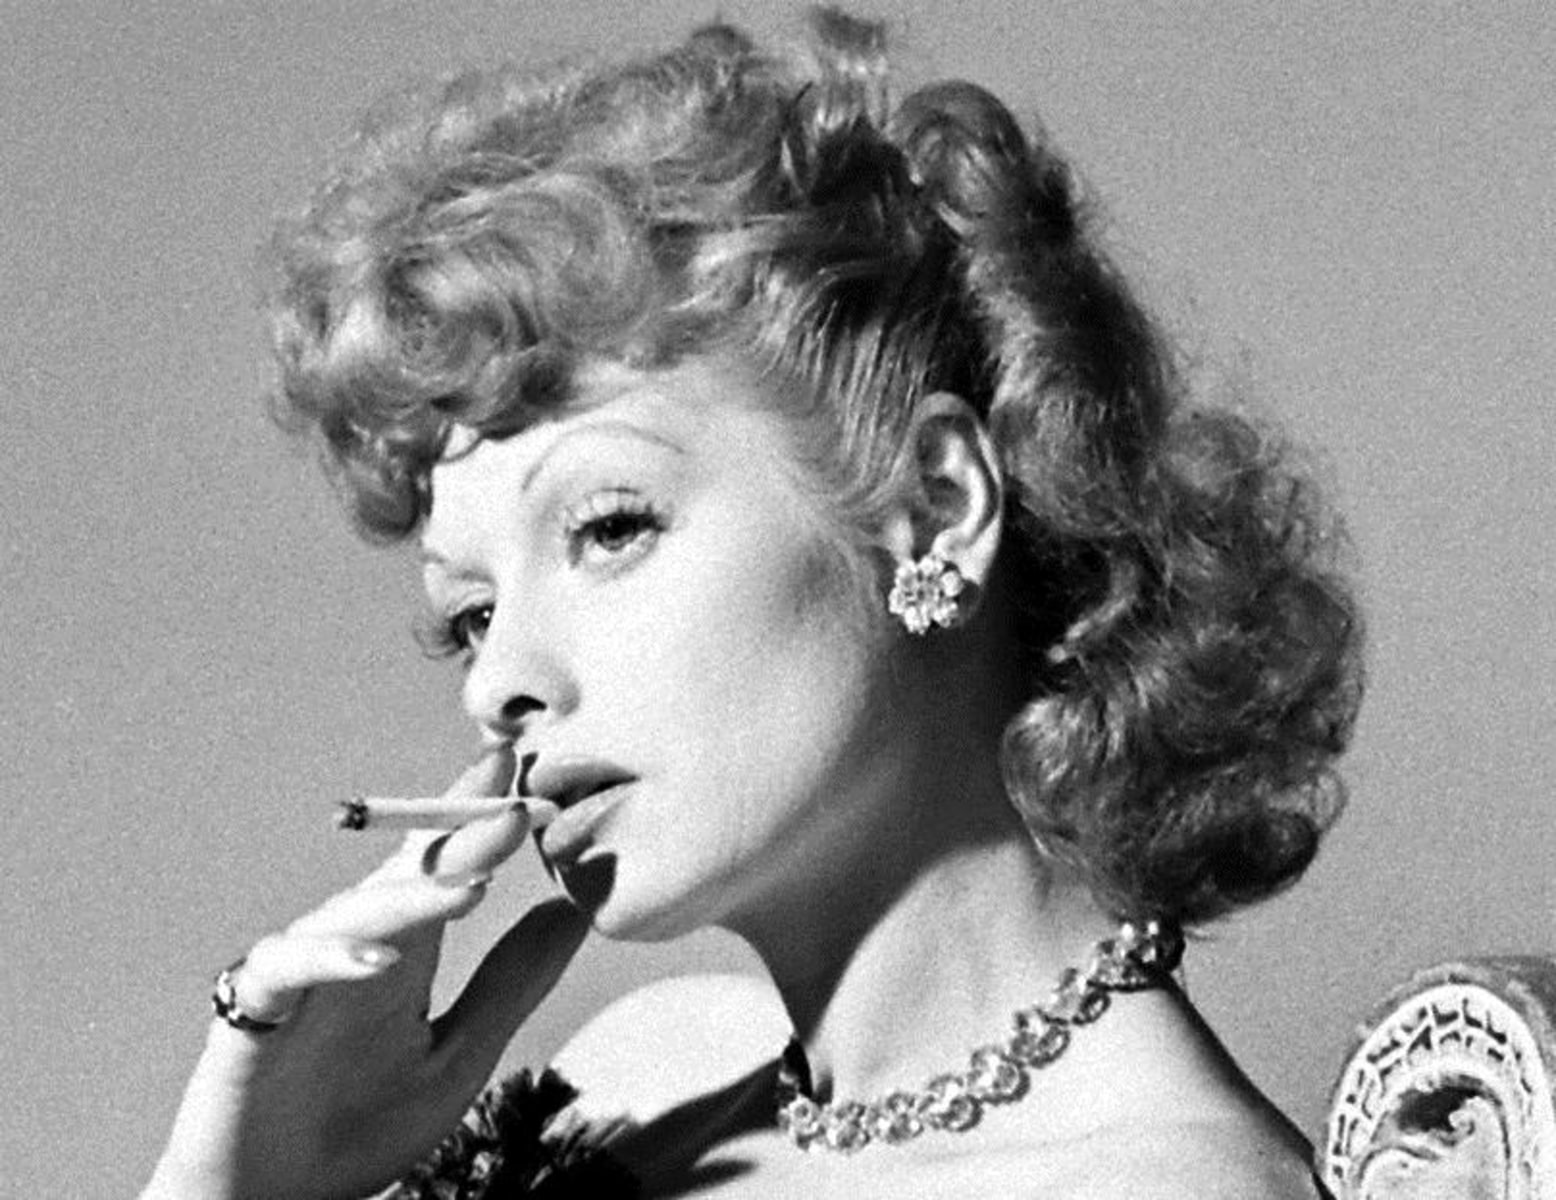 Image: Lucille Ball